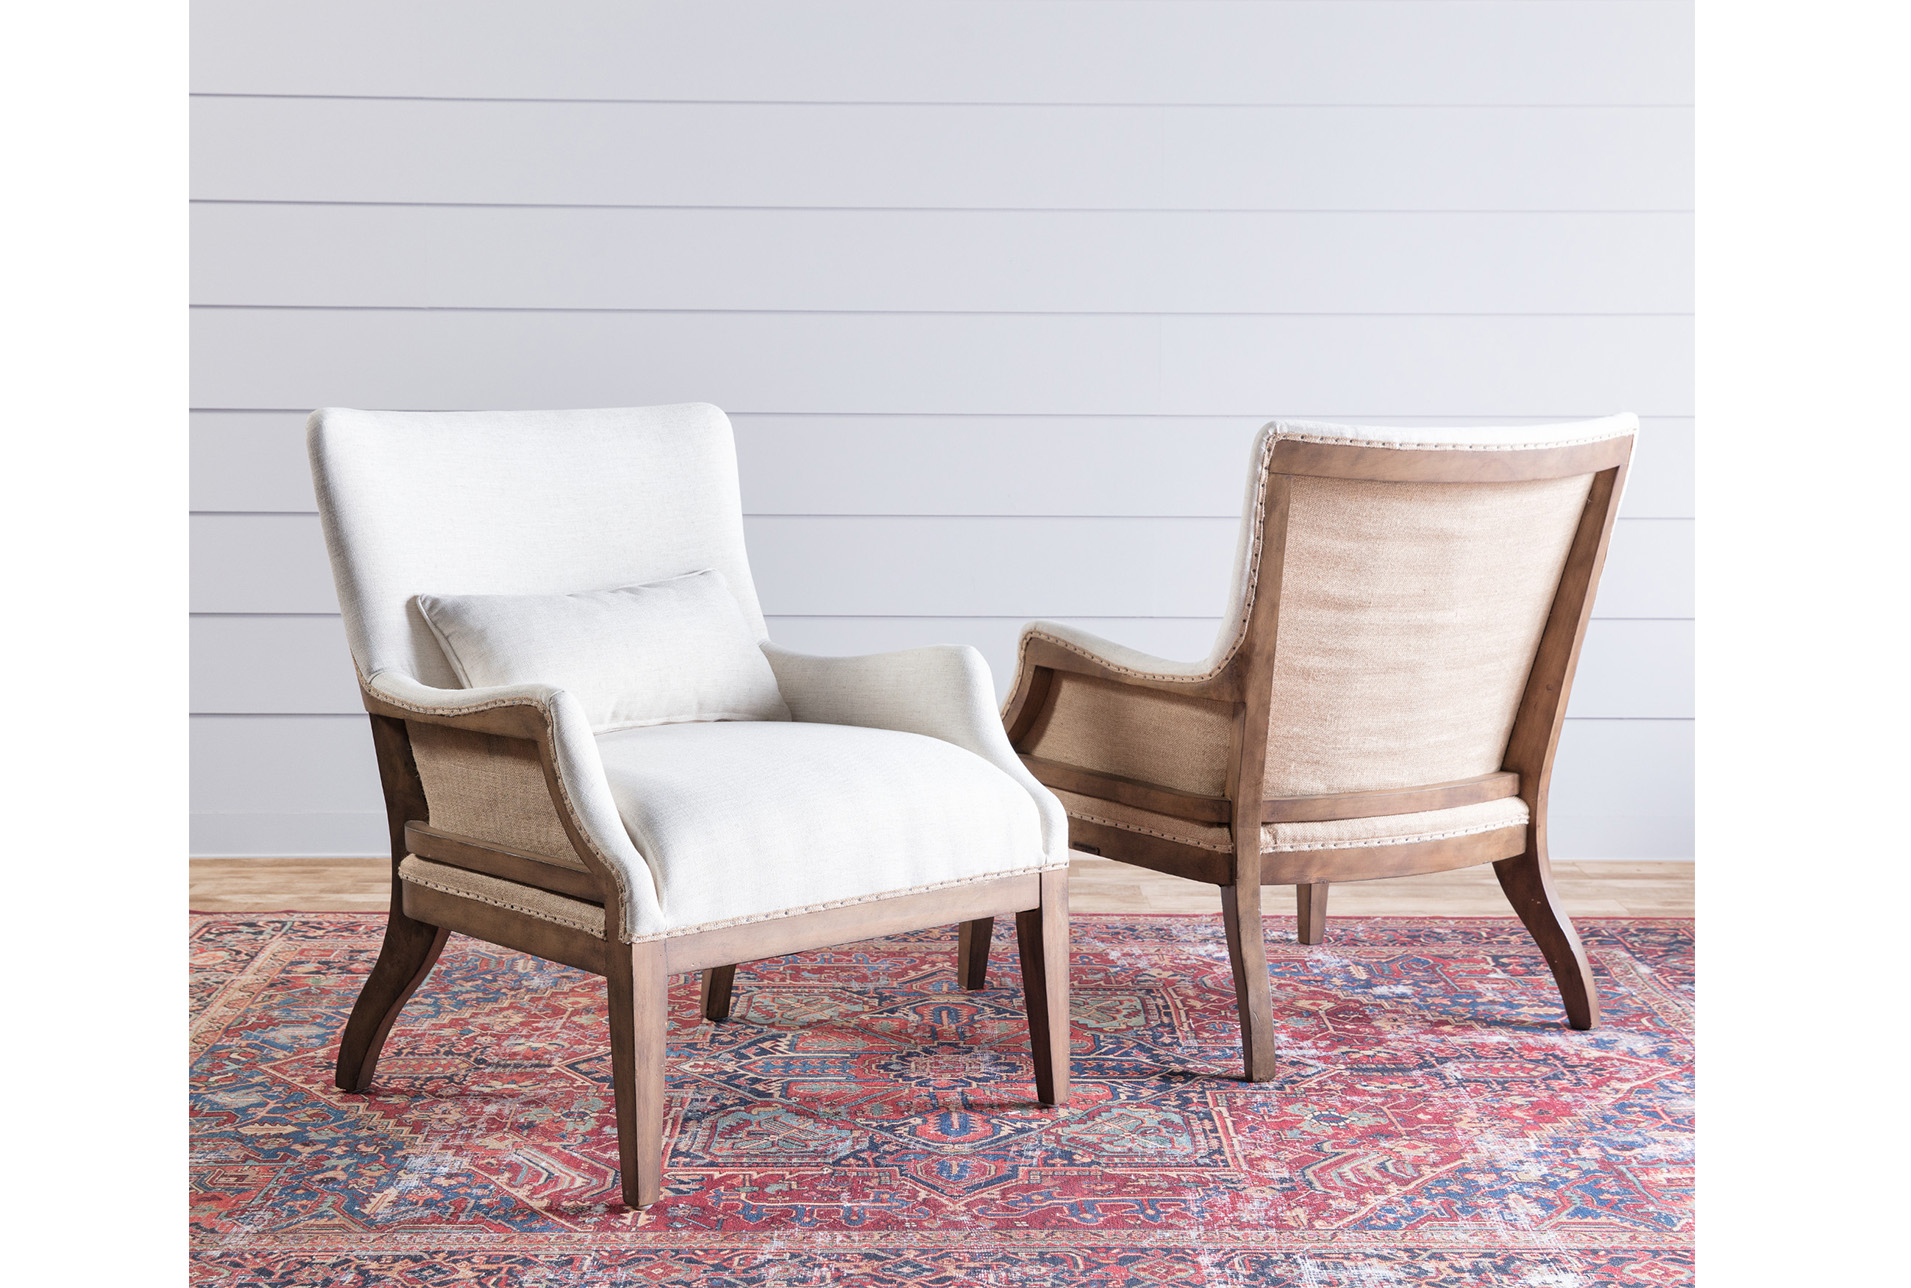 Magnolia Home Renew Ivory Accent Chairjoanna Gaines | Products Throughout Magnolia Home Paradigm Sofa Chairs By Joanna Gaines (View 13 of 25)